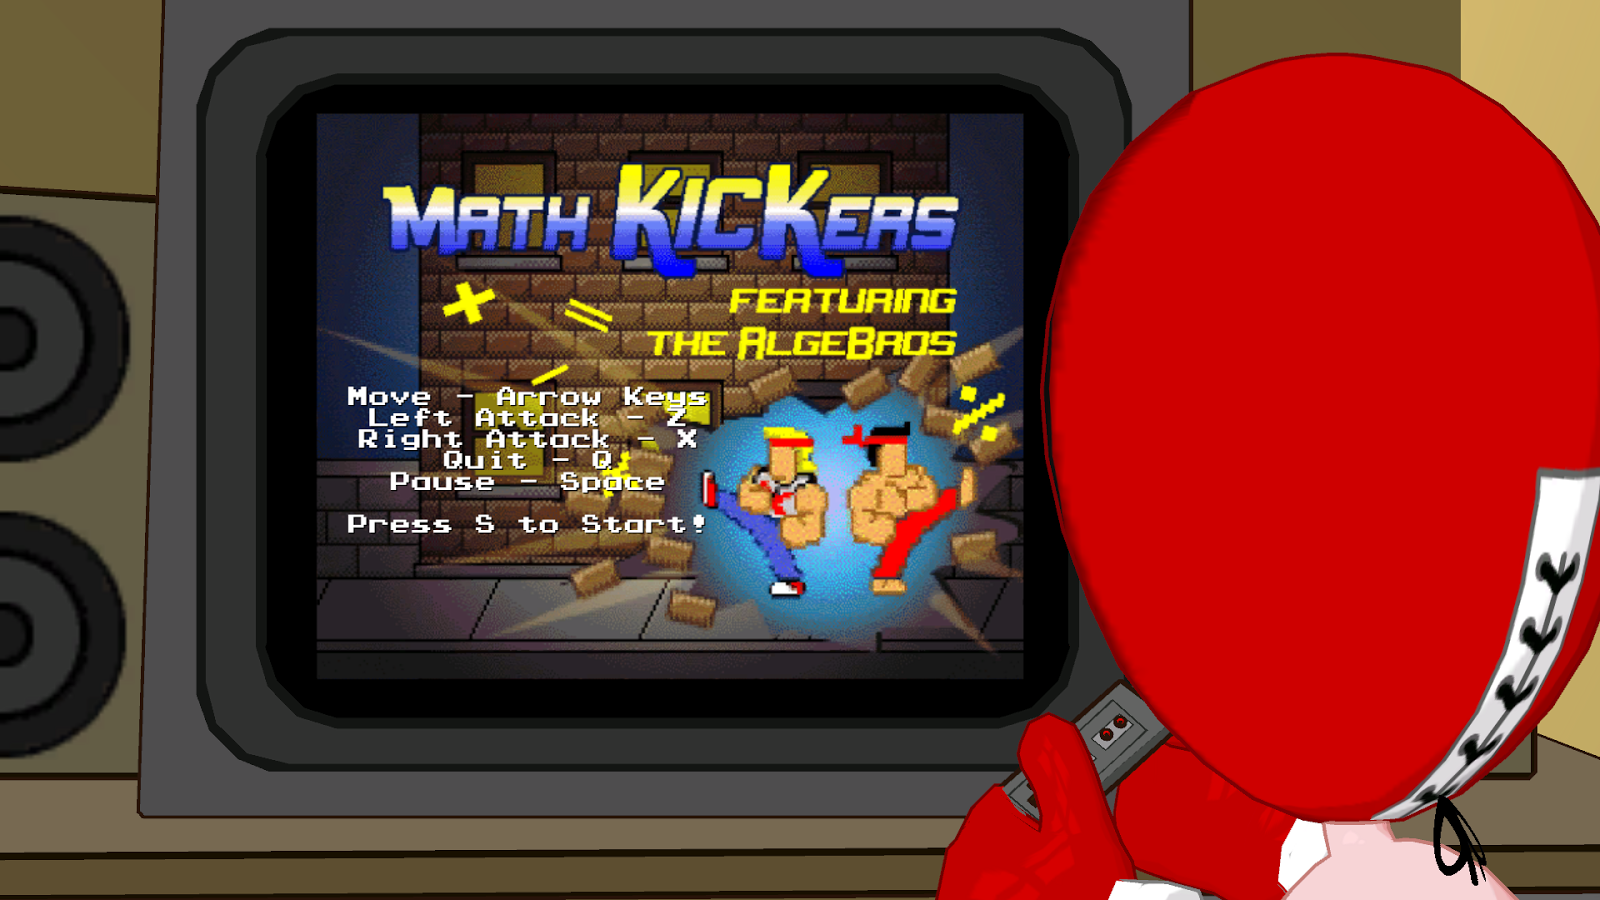 The Fun Machine In Strong Bad's Room Hosts The Educational Video Game Math  Kickers Featuring The Algebros, A Double Dragonstyle Arcade Game Where  The